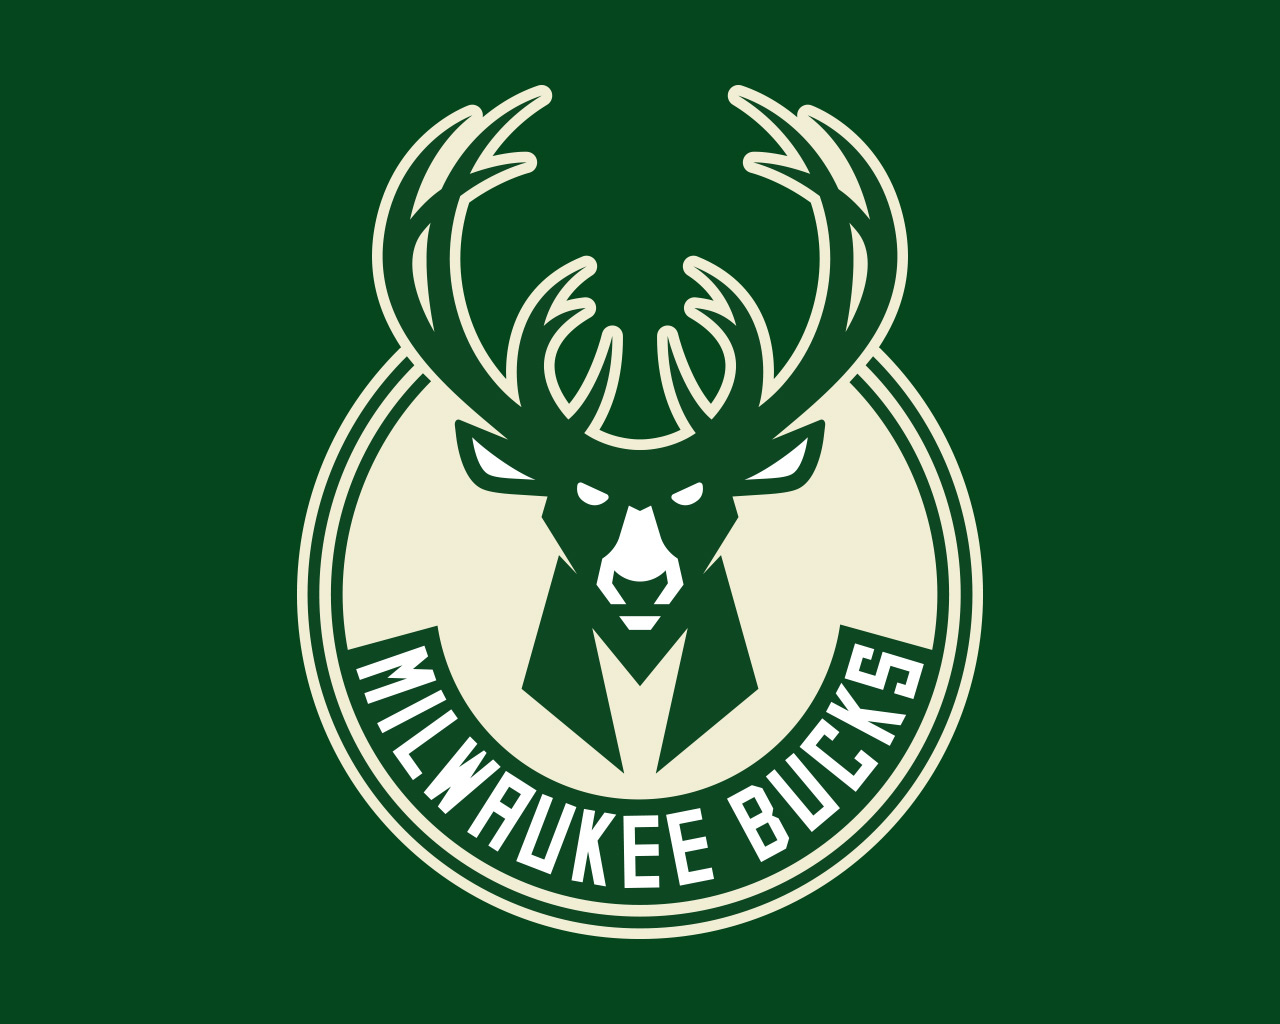 Bucks Backgrounds and Wallpapers Milwaukee Bucks 1280x1024